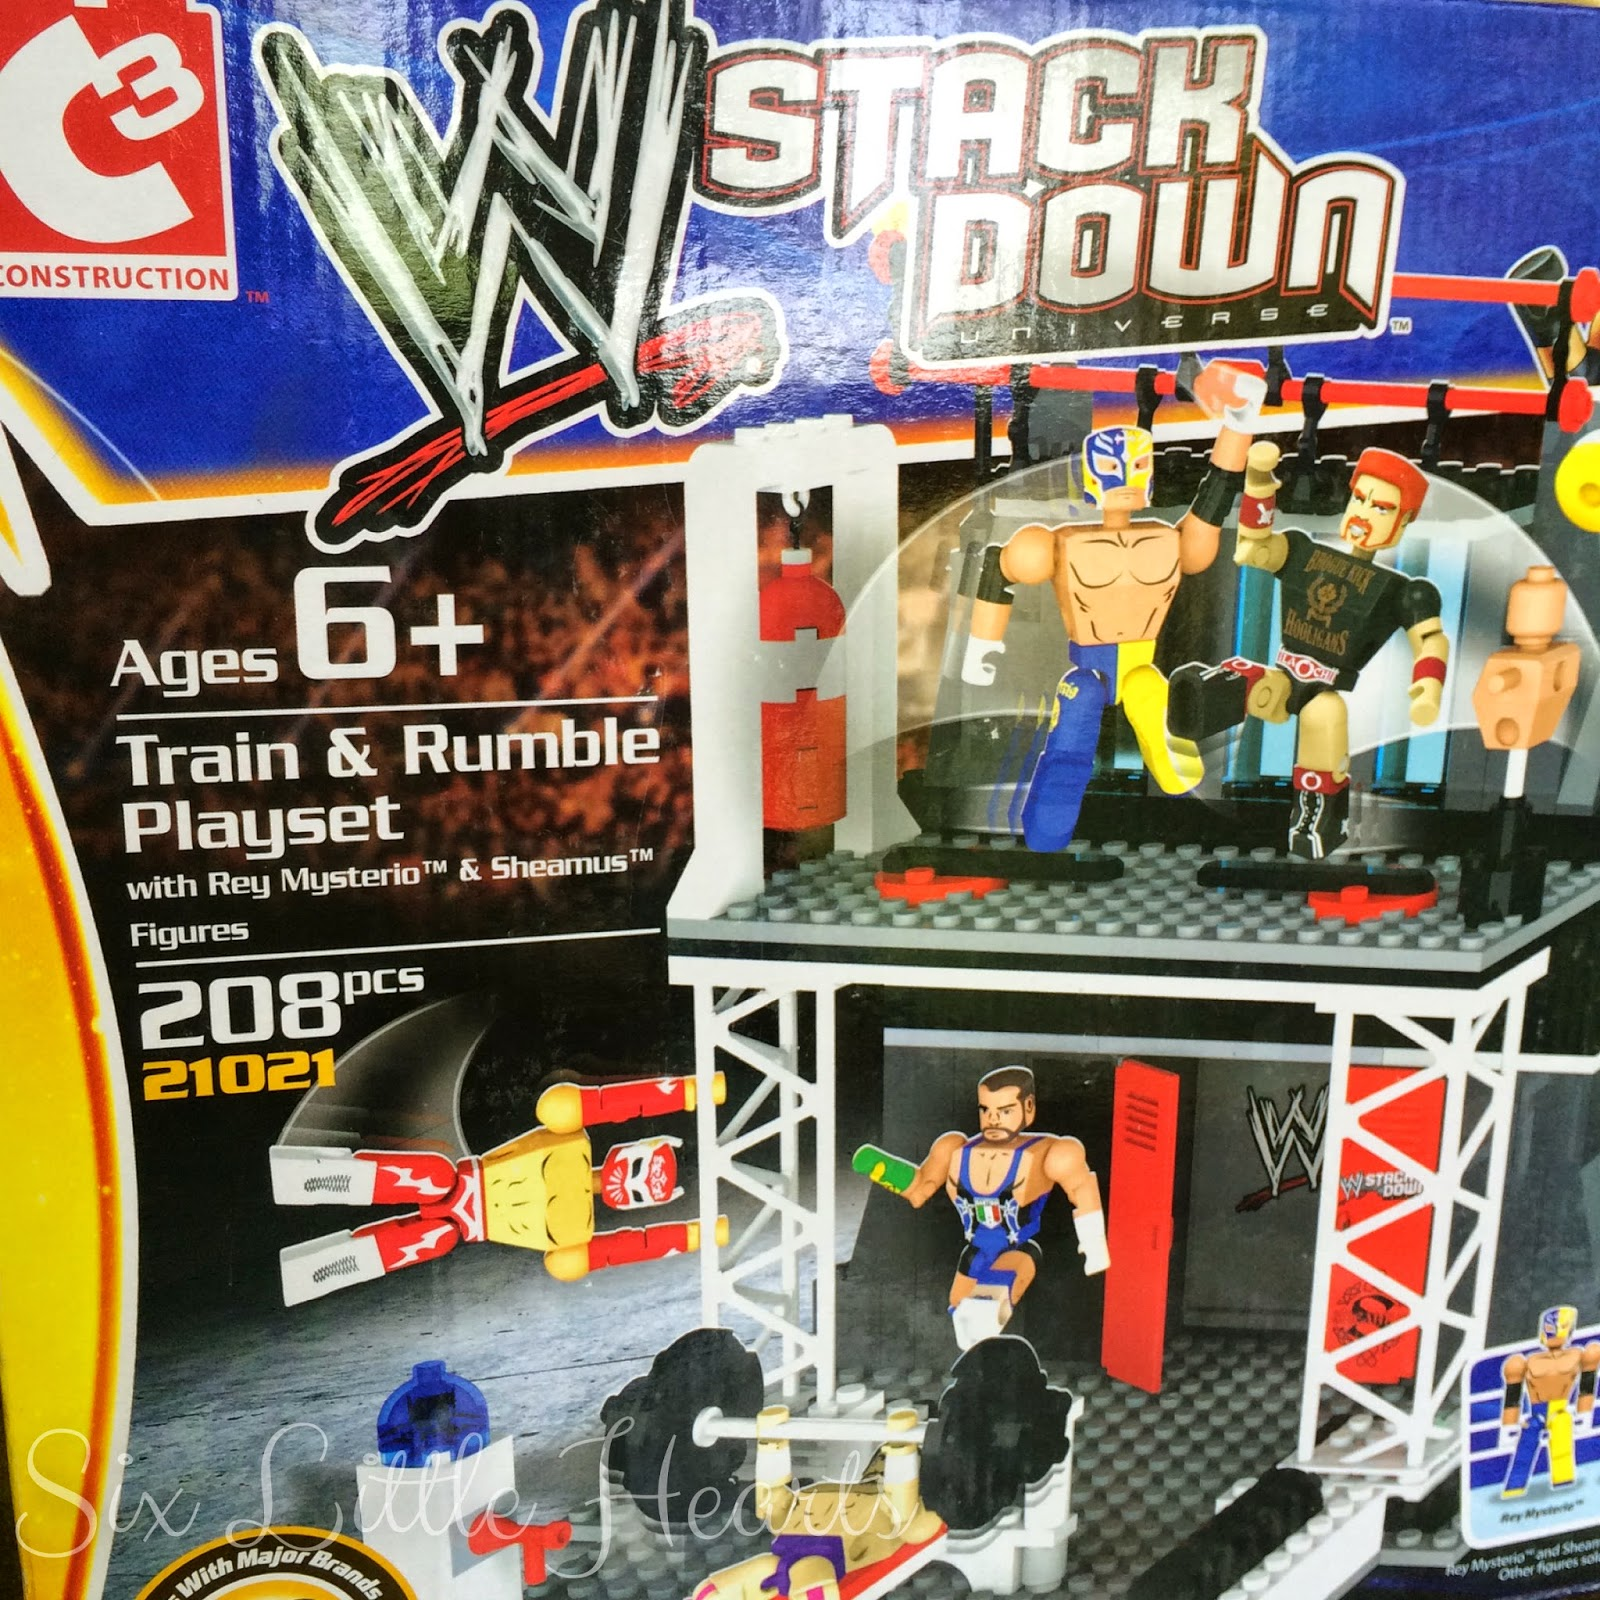 Wwe Toys For Boys : Six little hearts slhfeaturedthursdays wwe stack down